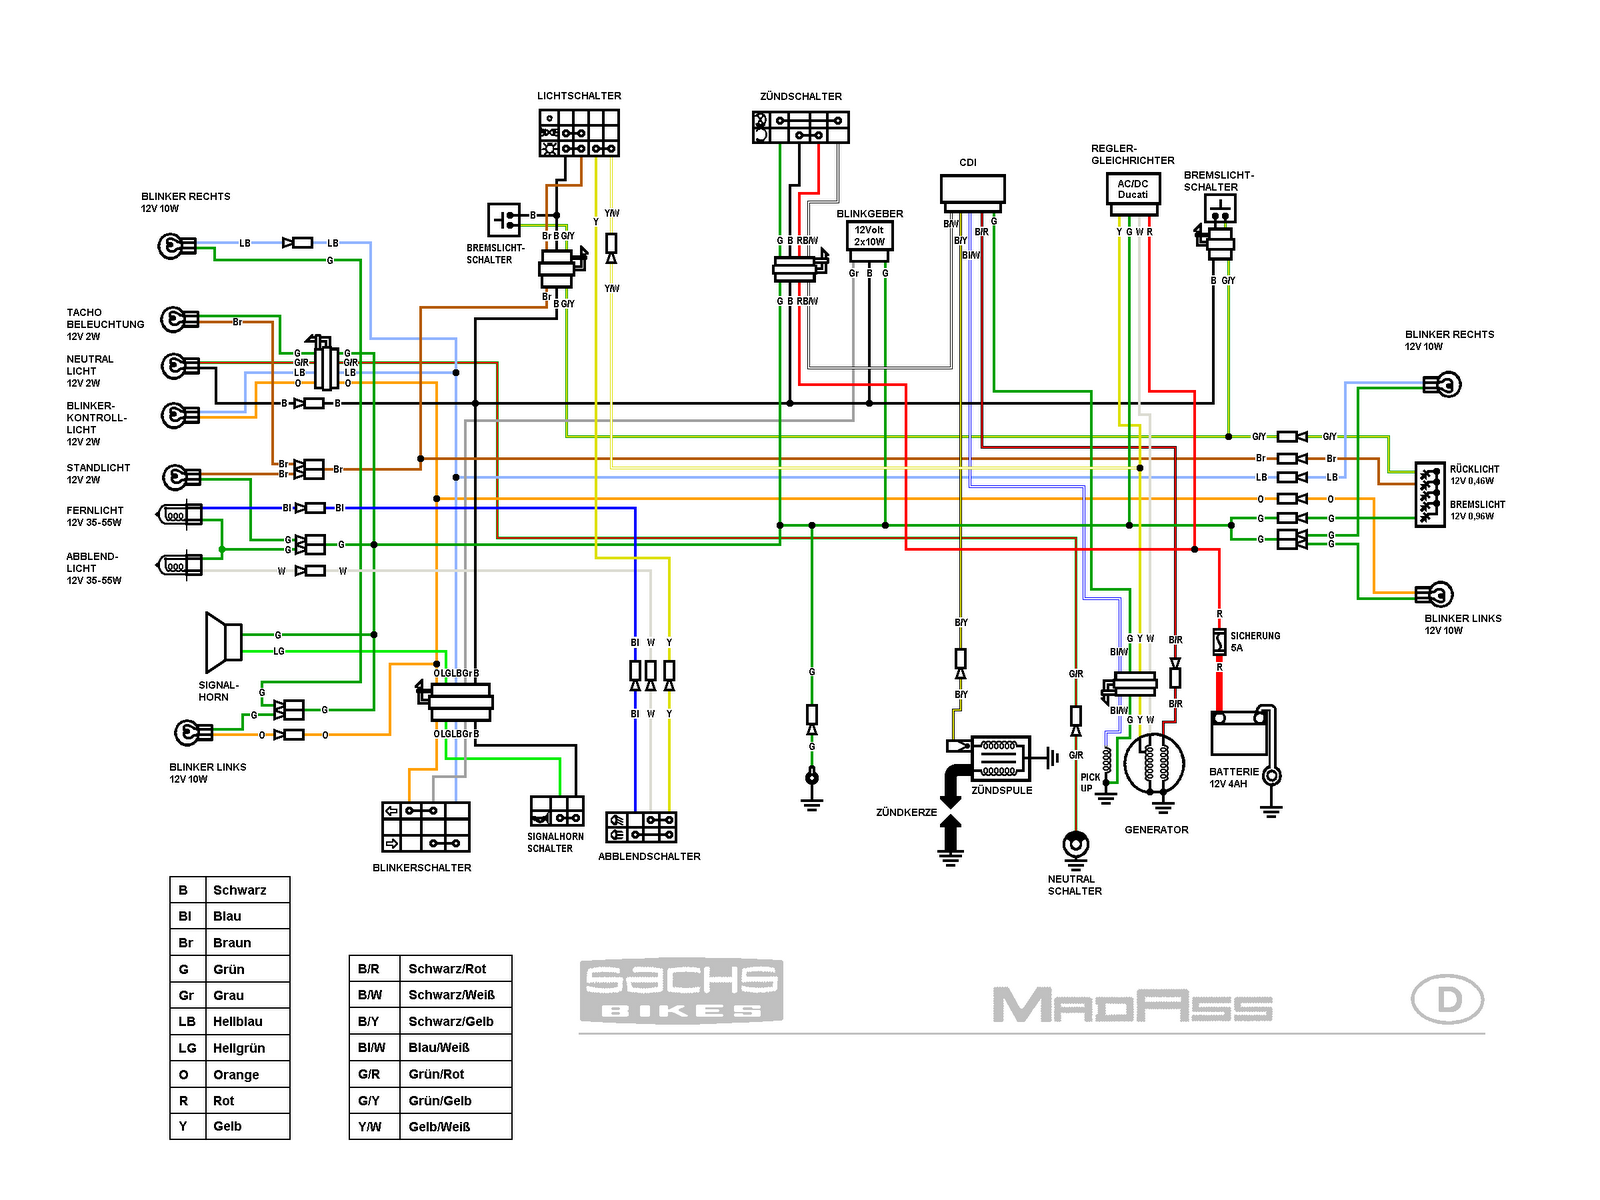 2006 pontiac wave wiring diagram 2006 wiring diagrams online pontiac wave wiring diagram